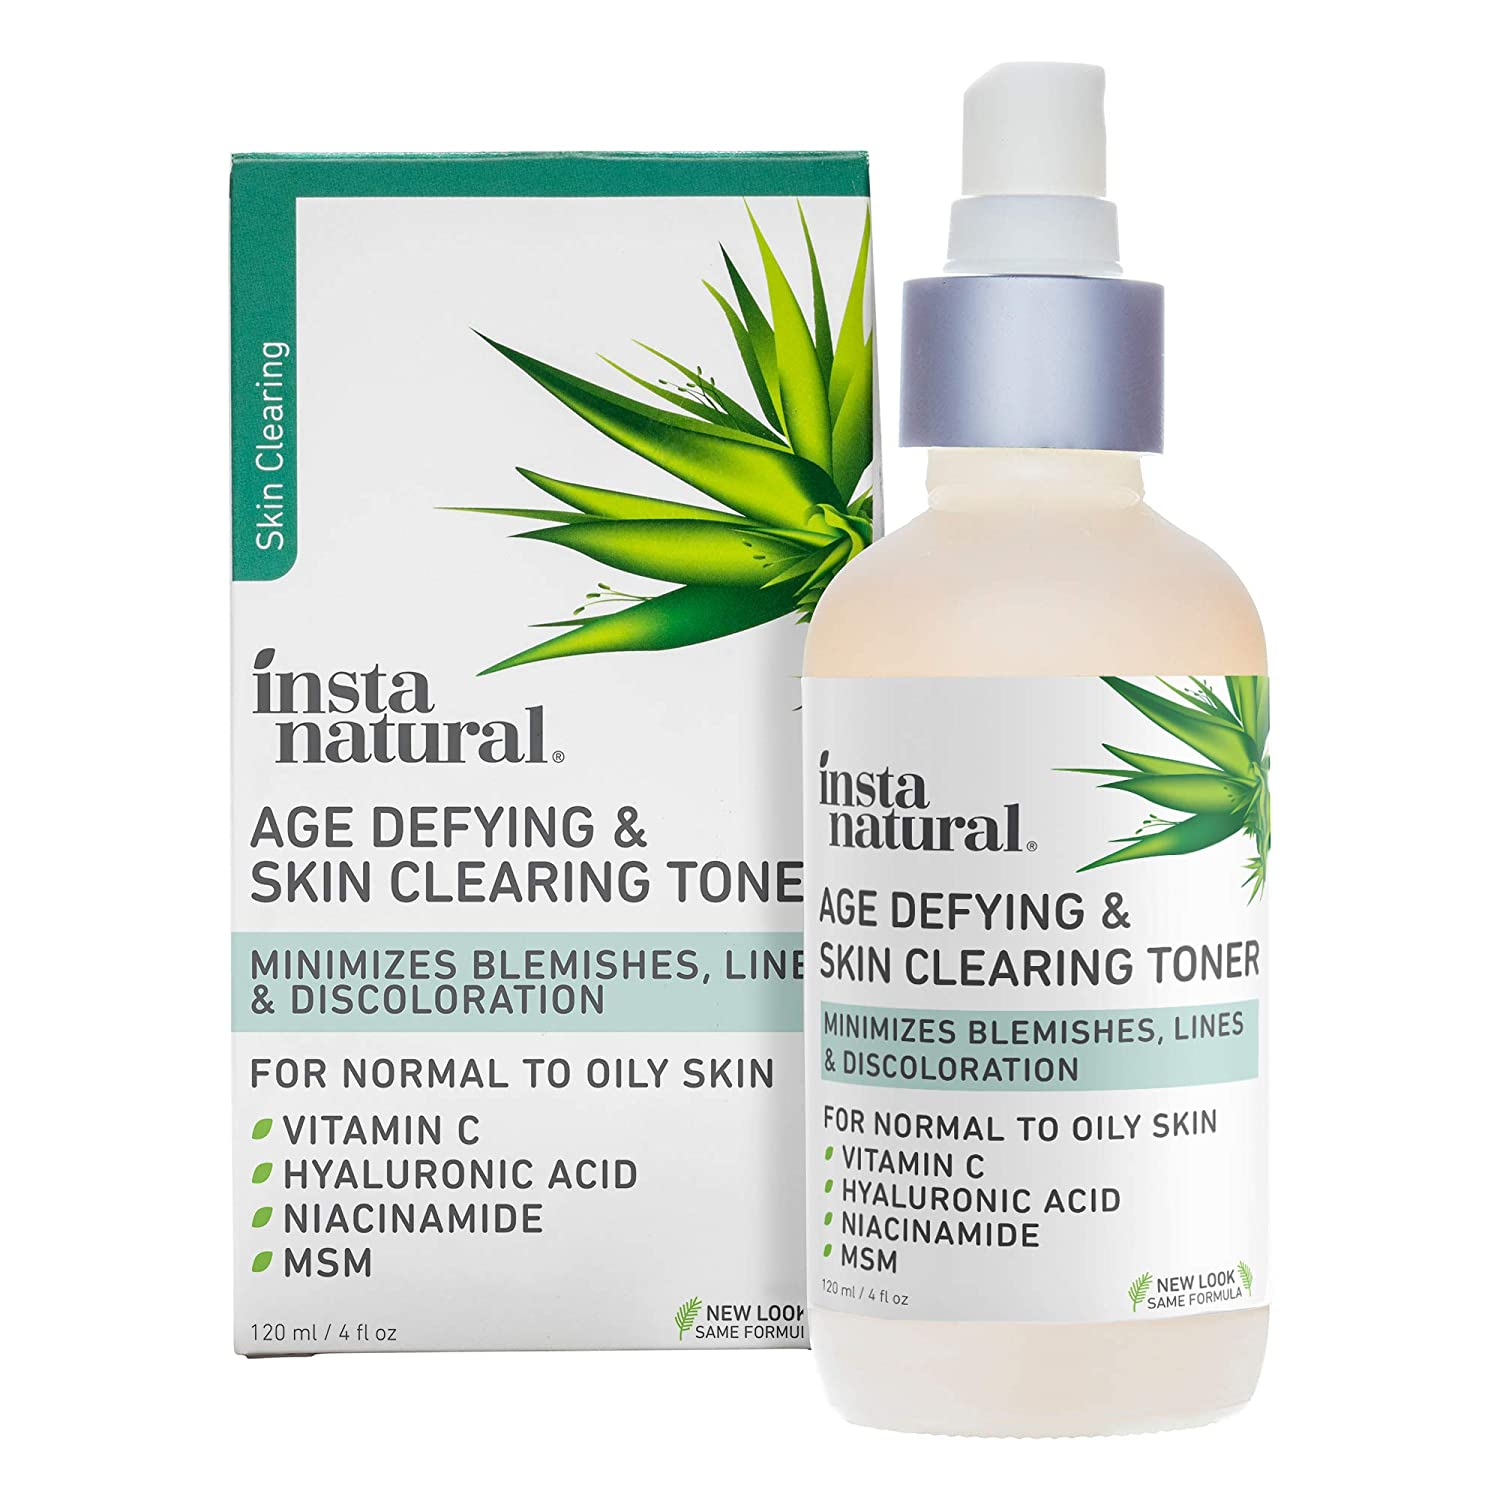 Insta Natural Age Defying and Skin Clearing Toner